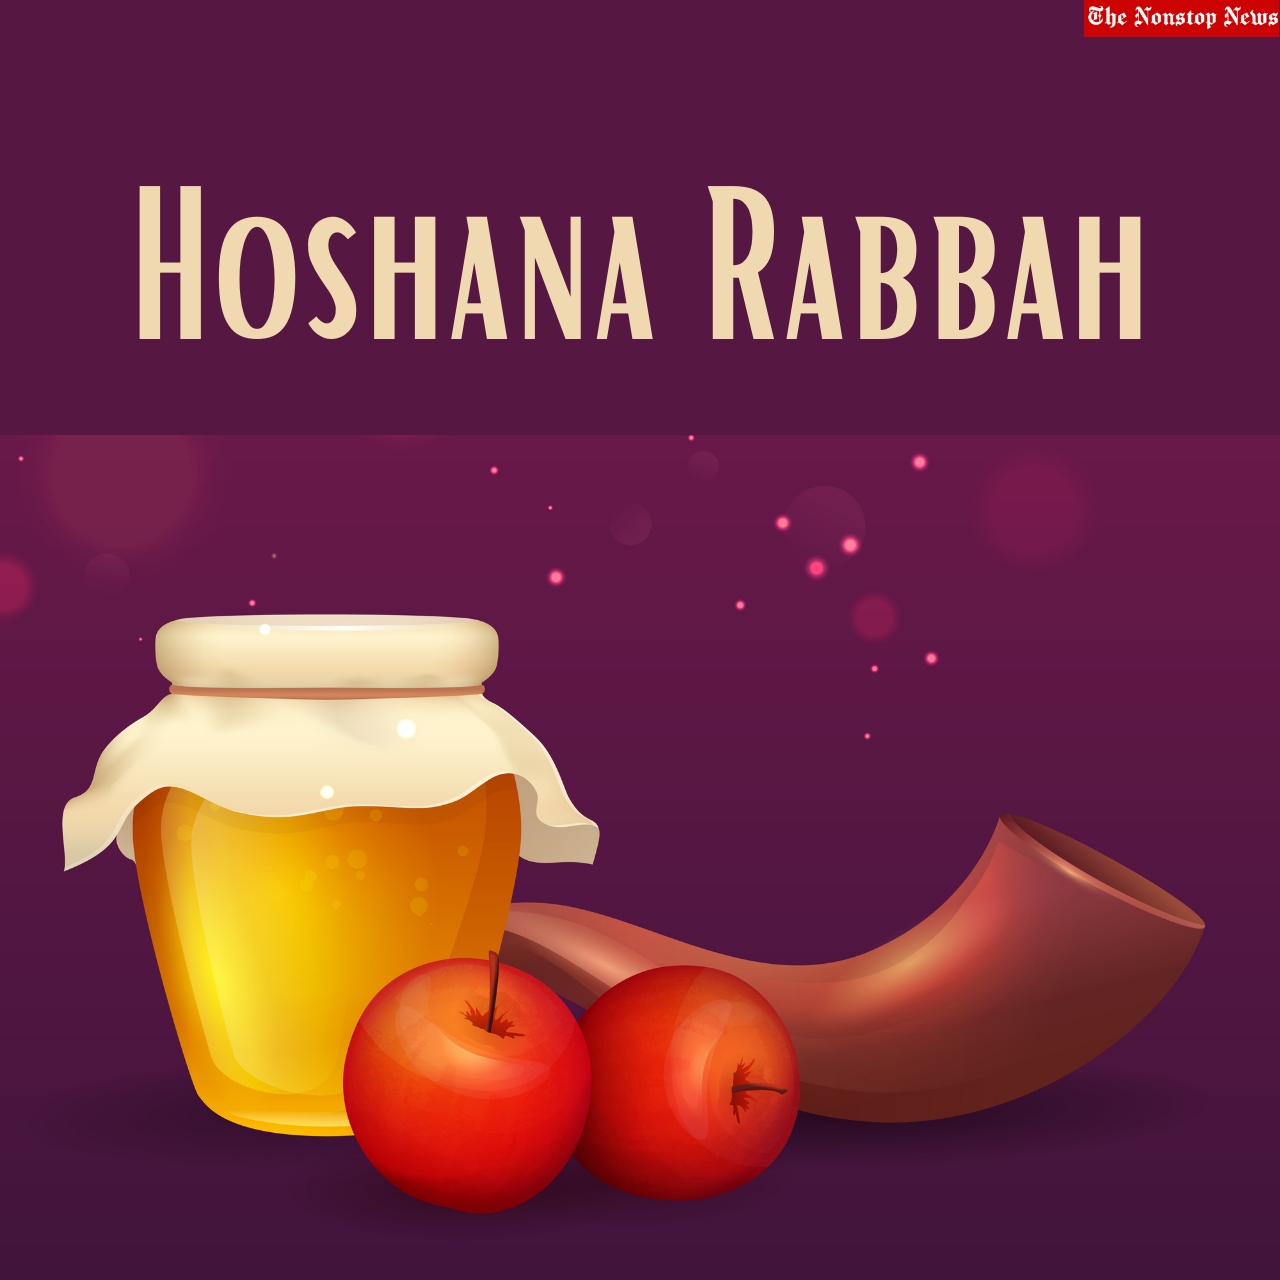 Hoshana Rabbah 2021 Greetings, HD Images, Messages, Quotes, Stickers, and Sayings to share